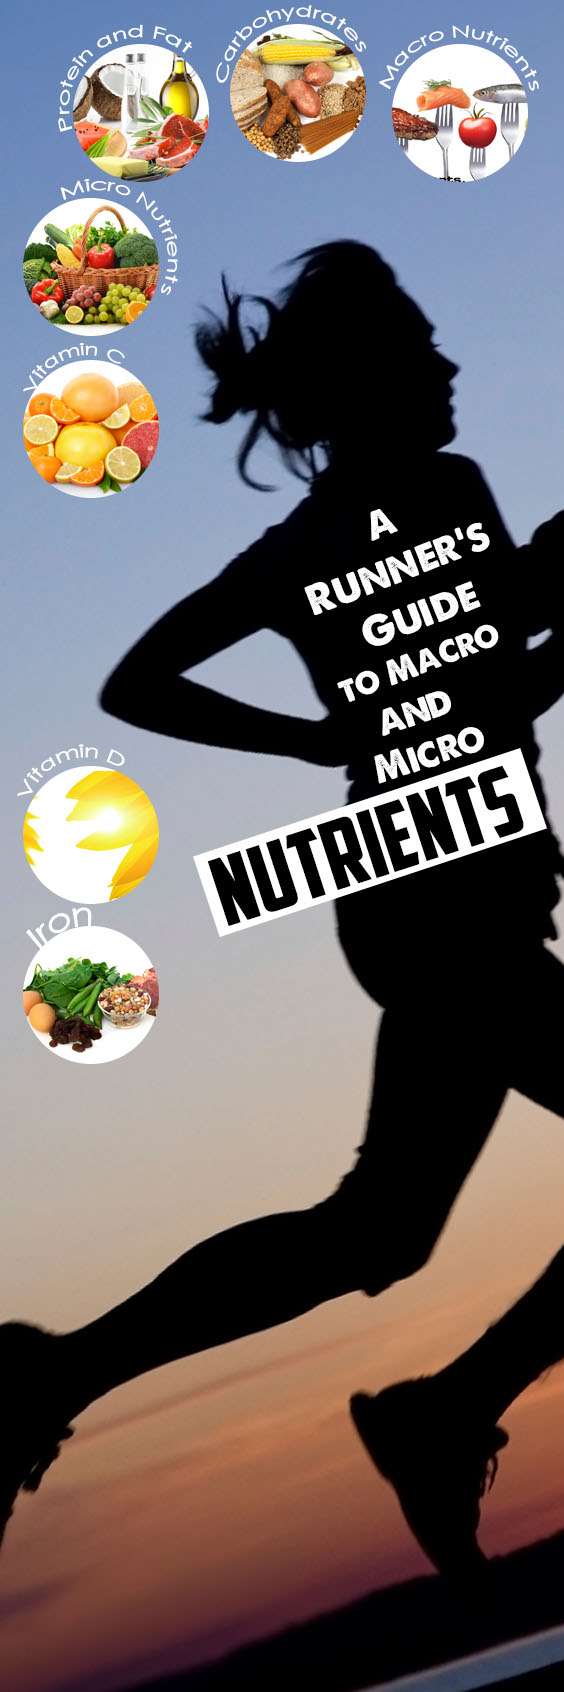 macro and micro nutrients Macronutrients that provide energy there are three primary macronutrients: carbohydrate, protein, and lipids macronutrients are defined as a class of chemical compounds which humans consume in the largest quantities (must be above a threshold amount) and.